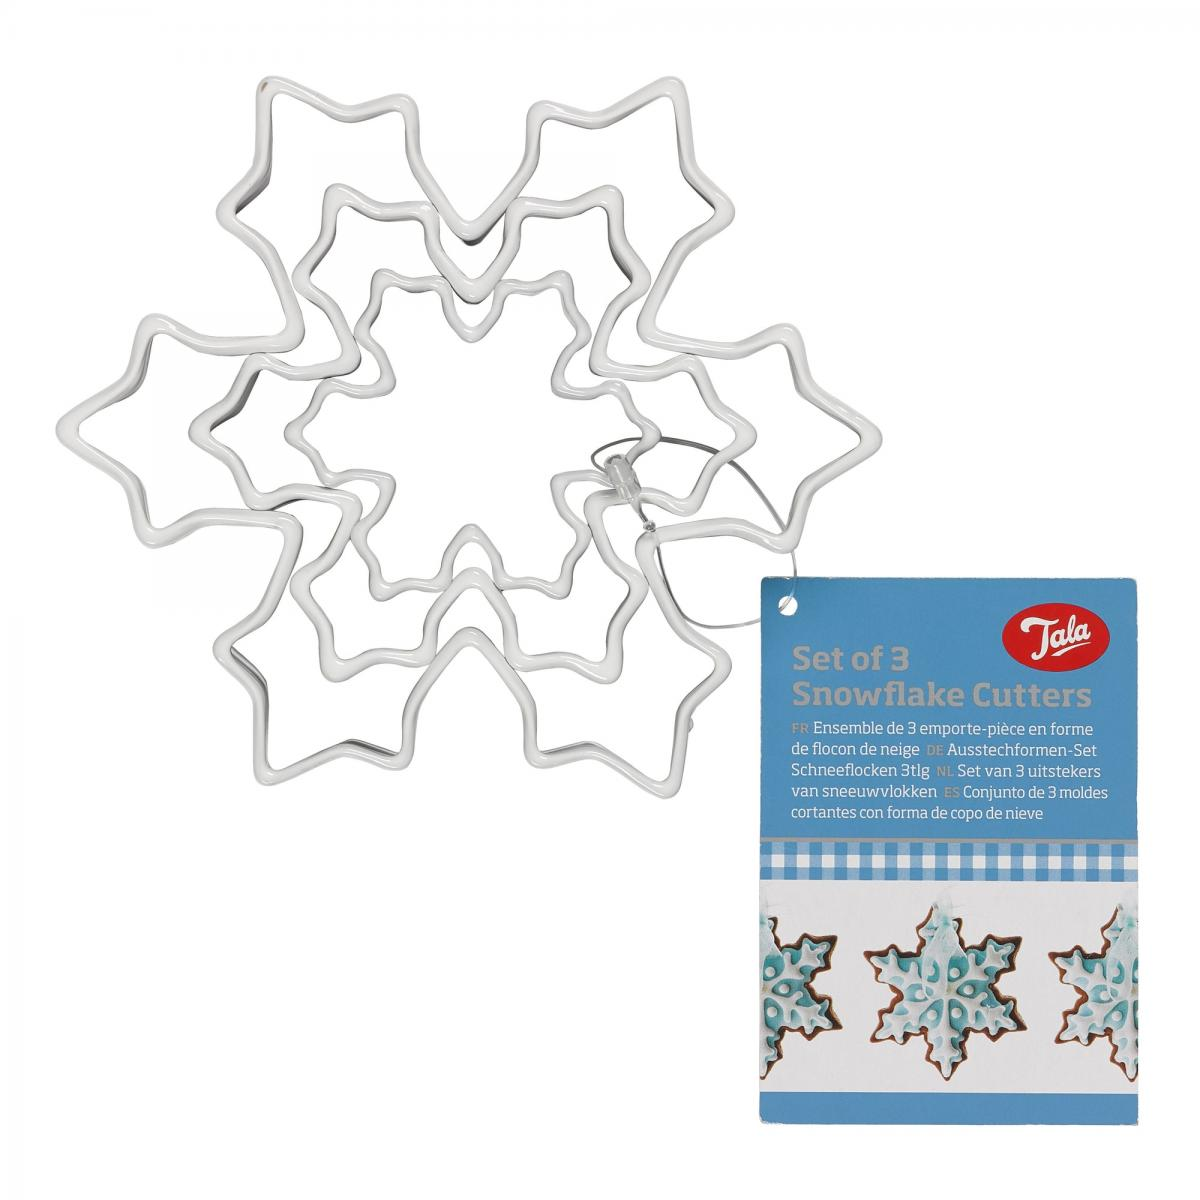 Set of Three Snowflake Cutters – Now Only £2.50